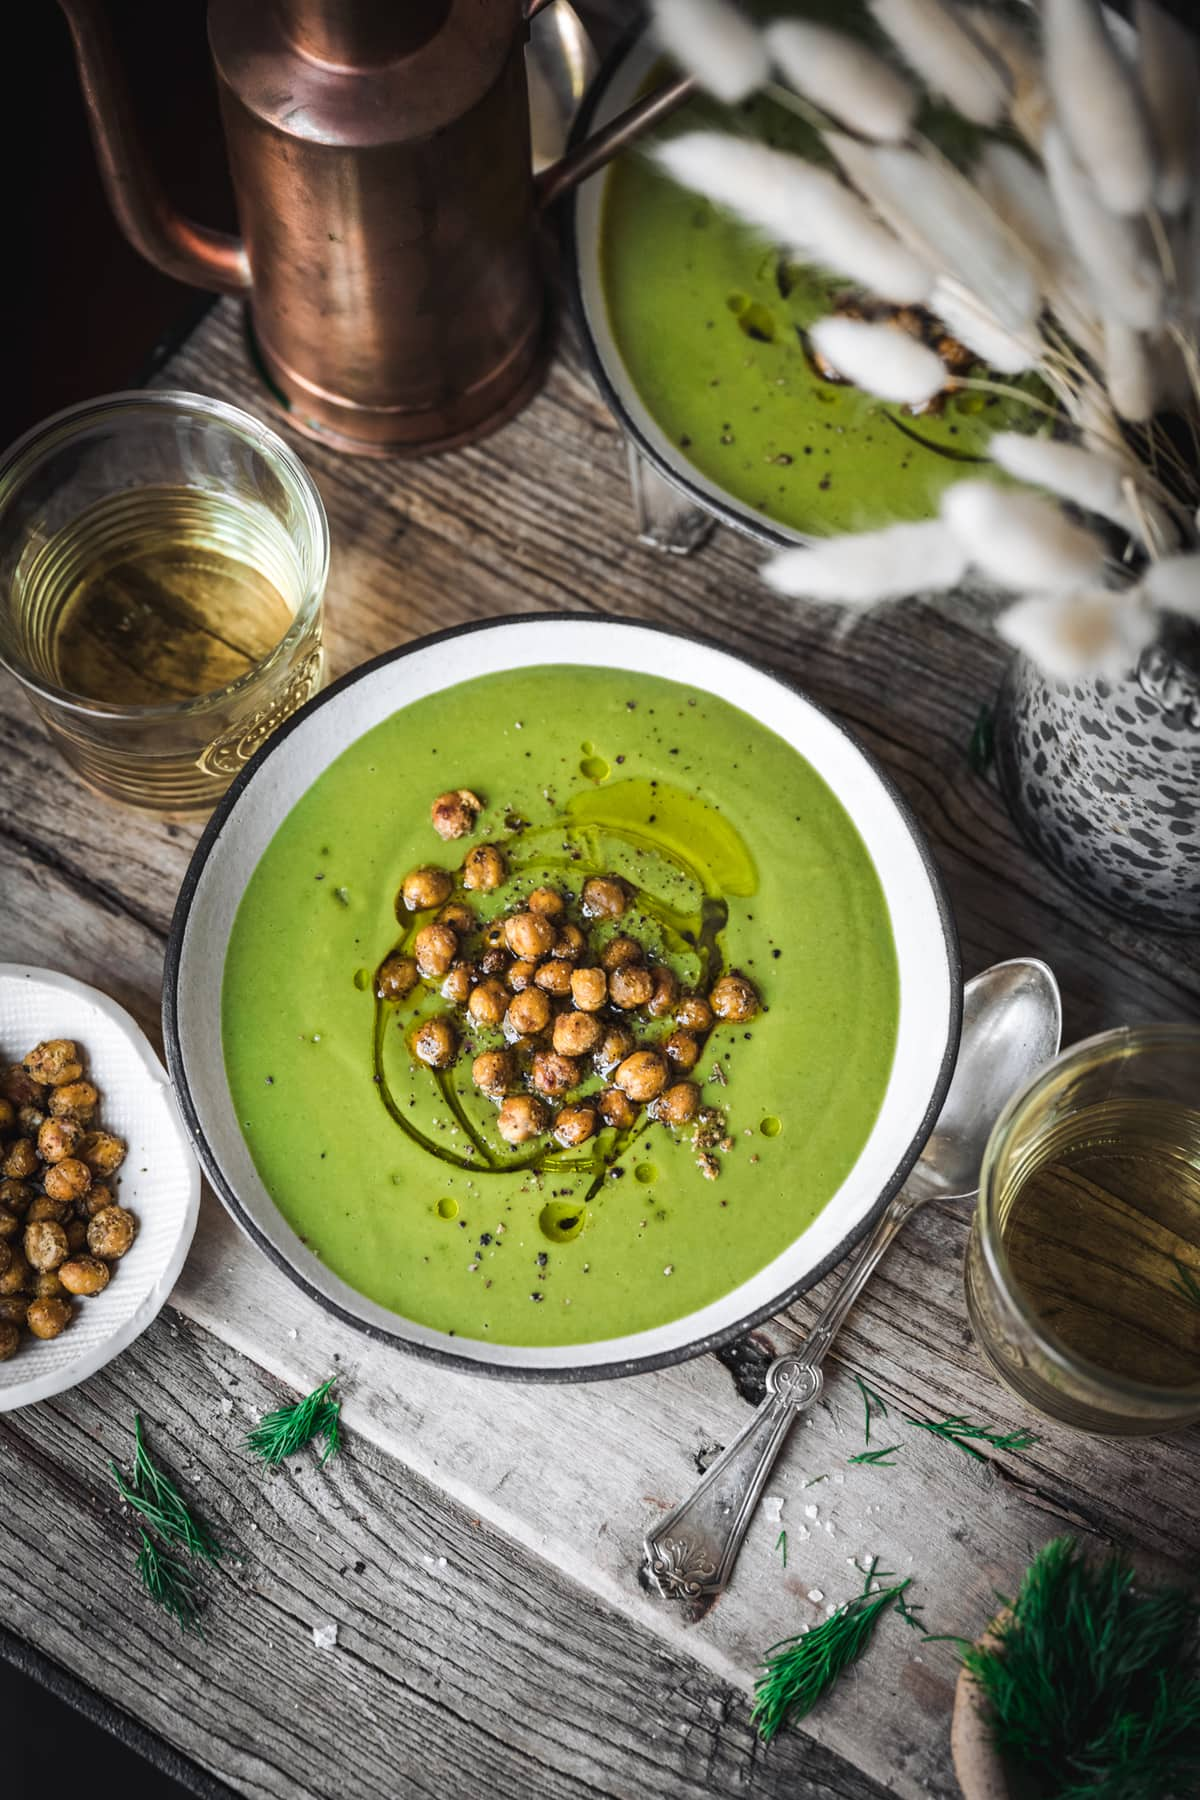 overhead view of creamy vegan broccoli spinach soup on wood table with crispy chickpeas